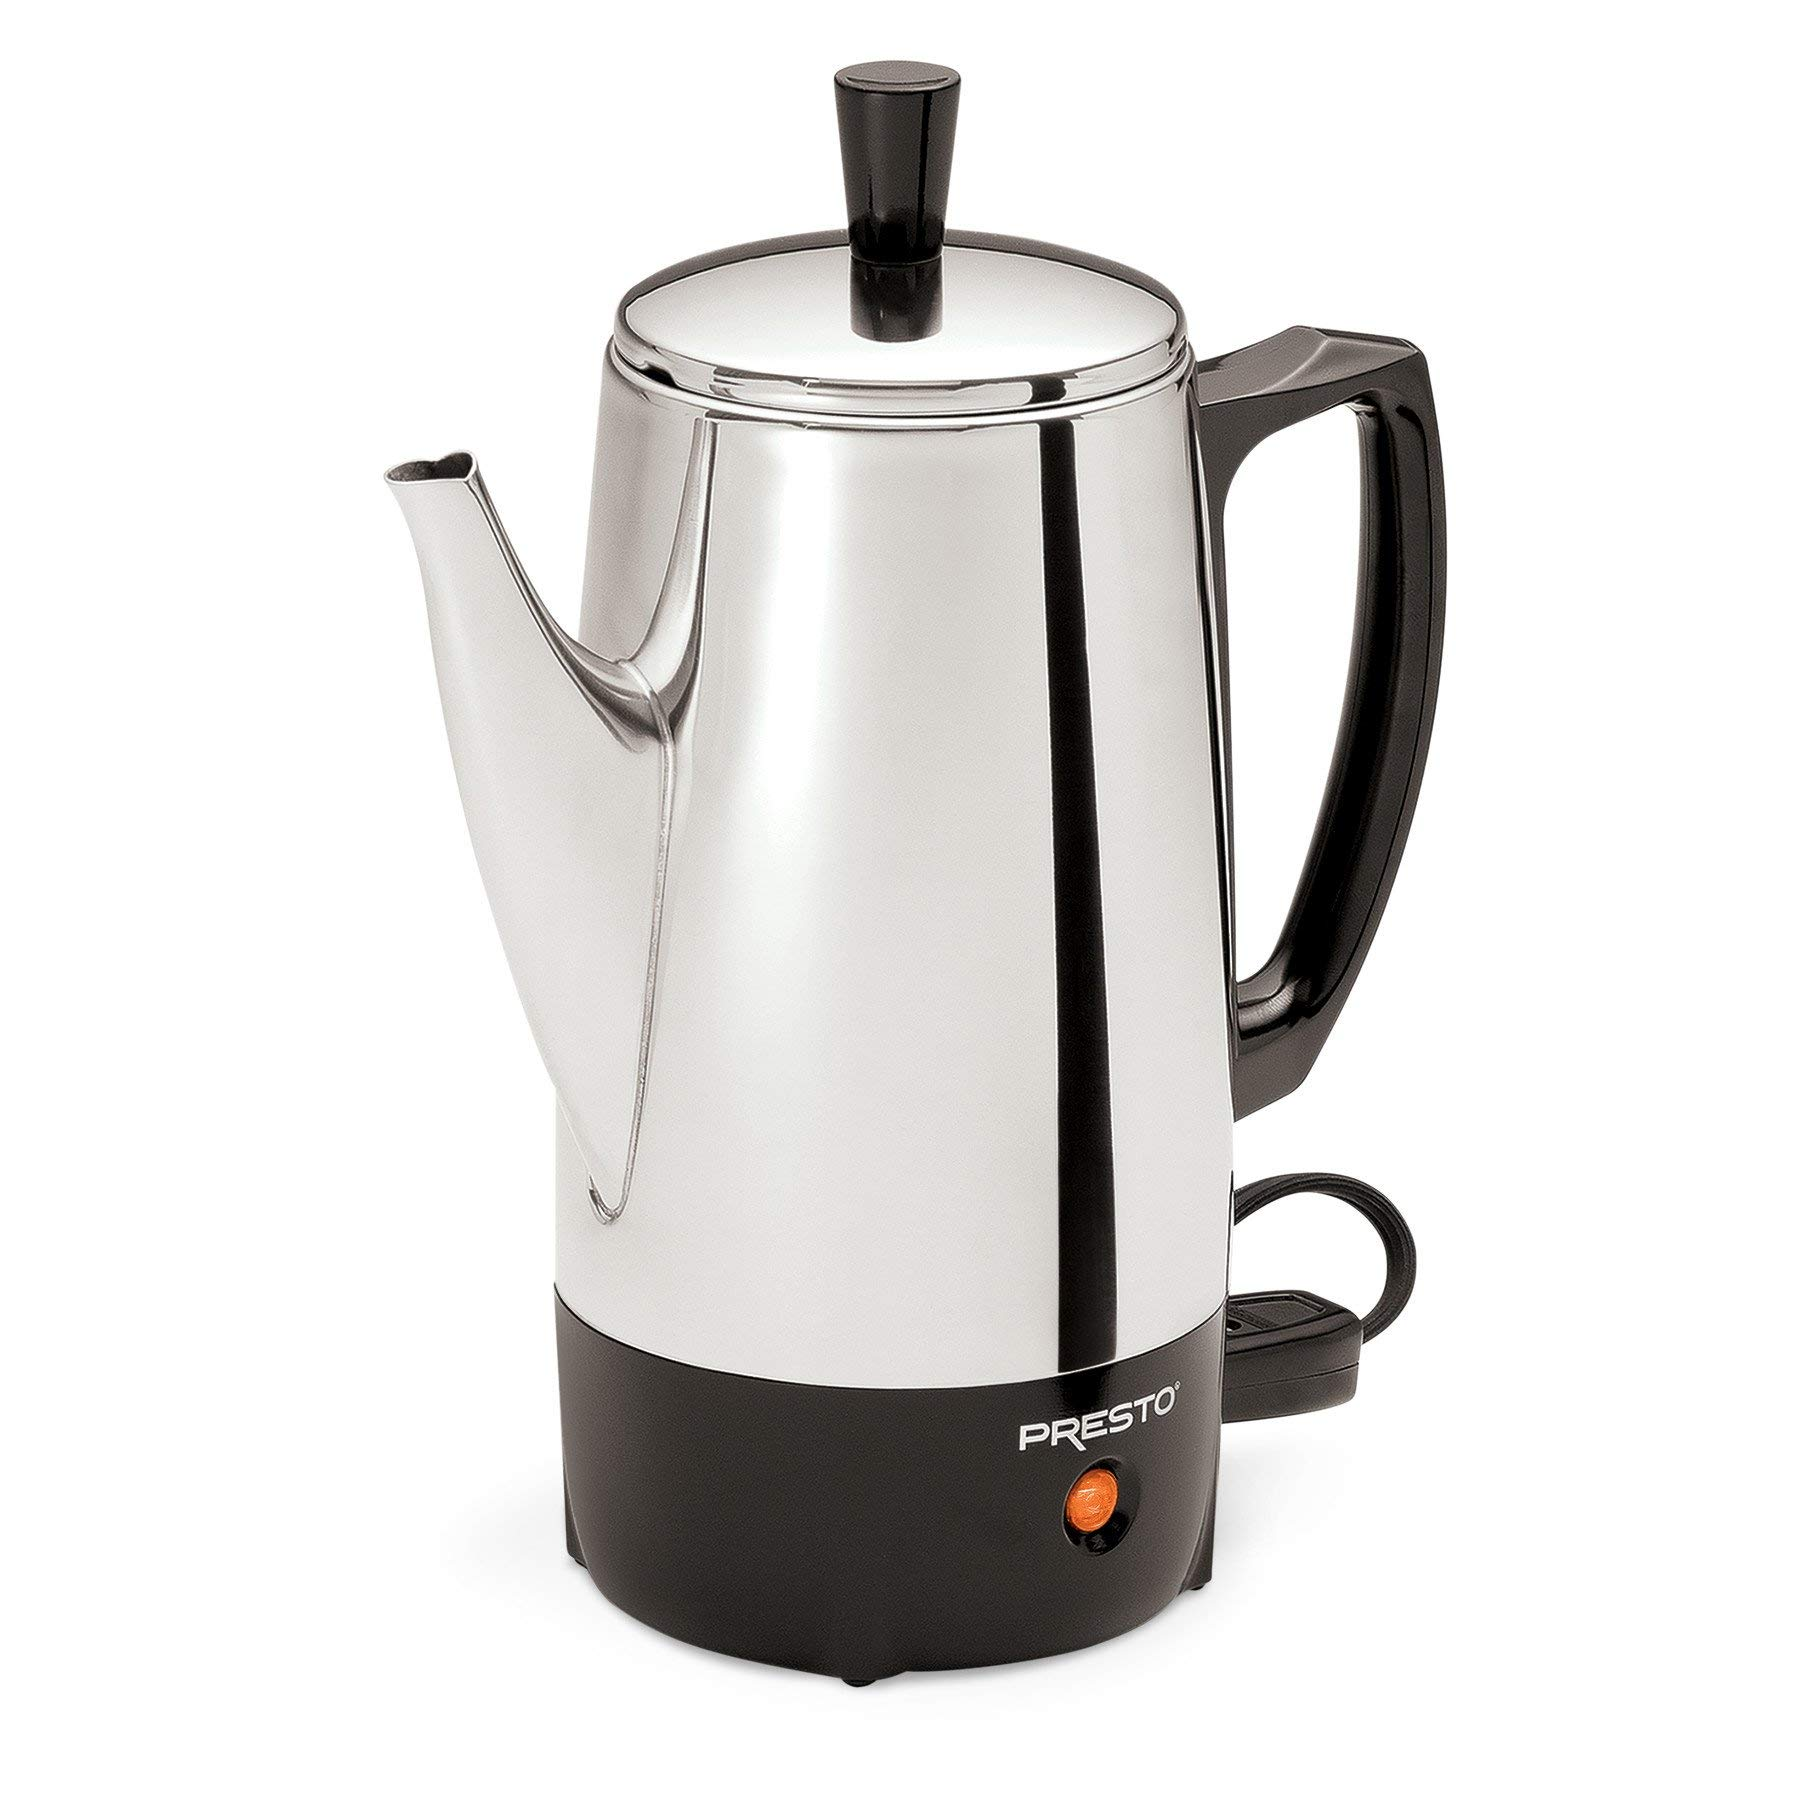 Presto 02822 6-Cup Stainless-Steel Coffee Percolator (Renewed)